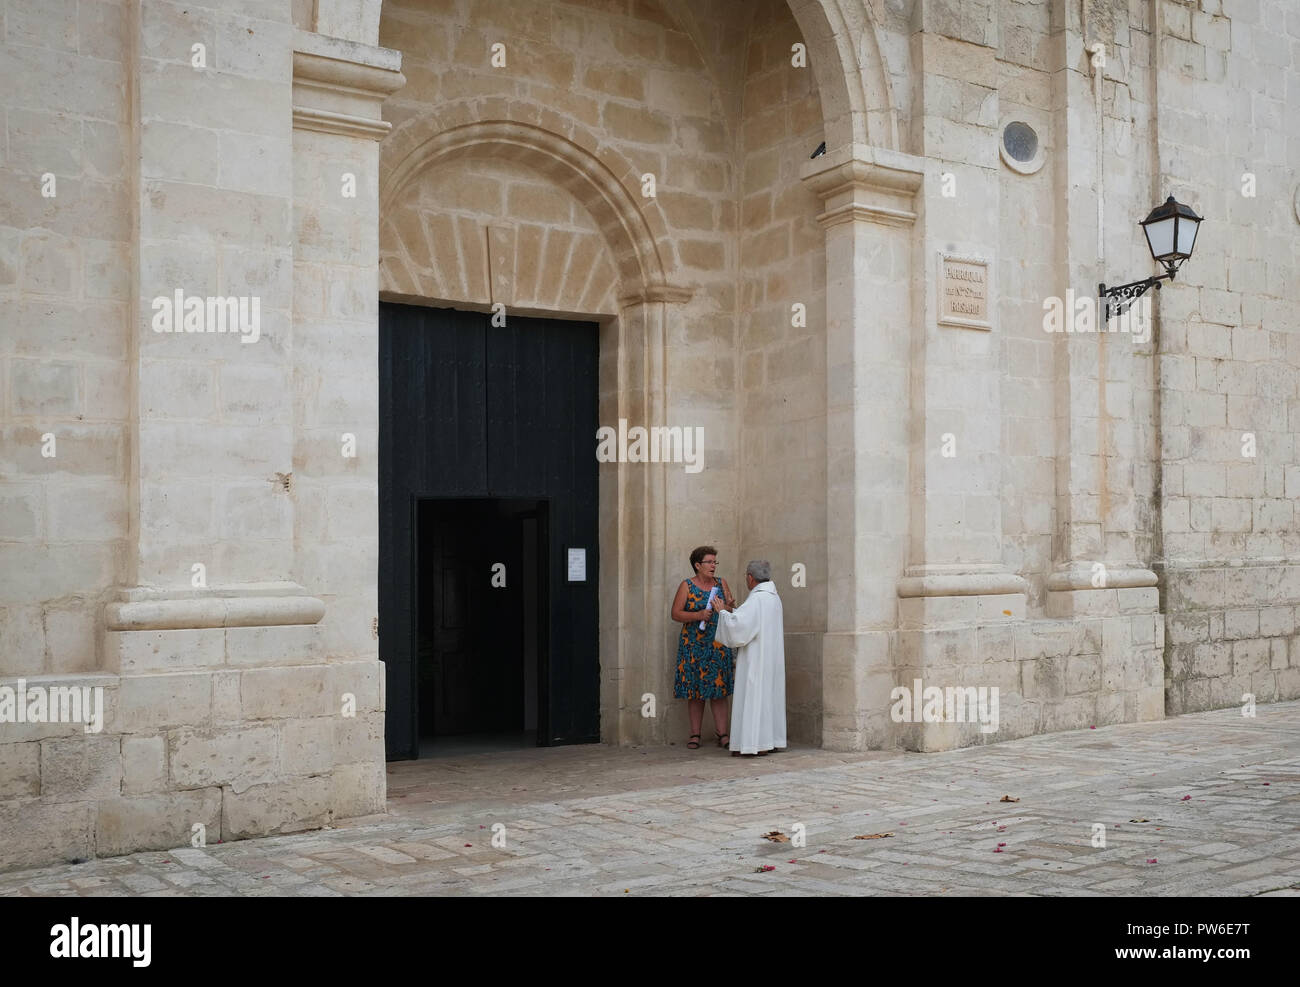 A Catholic priest talks to a member of the congregation after Sunday Mass at Parroquia De Nuestra Señora Del Rosario, Es Castell, Menorca, Spain - Stock Image